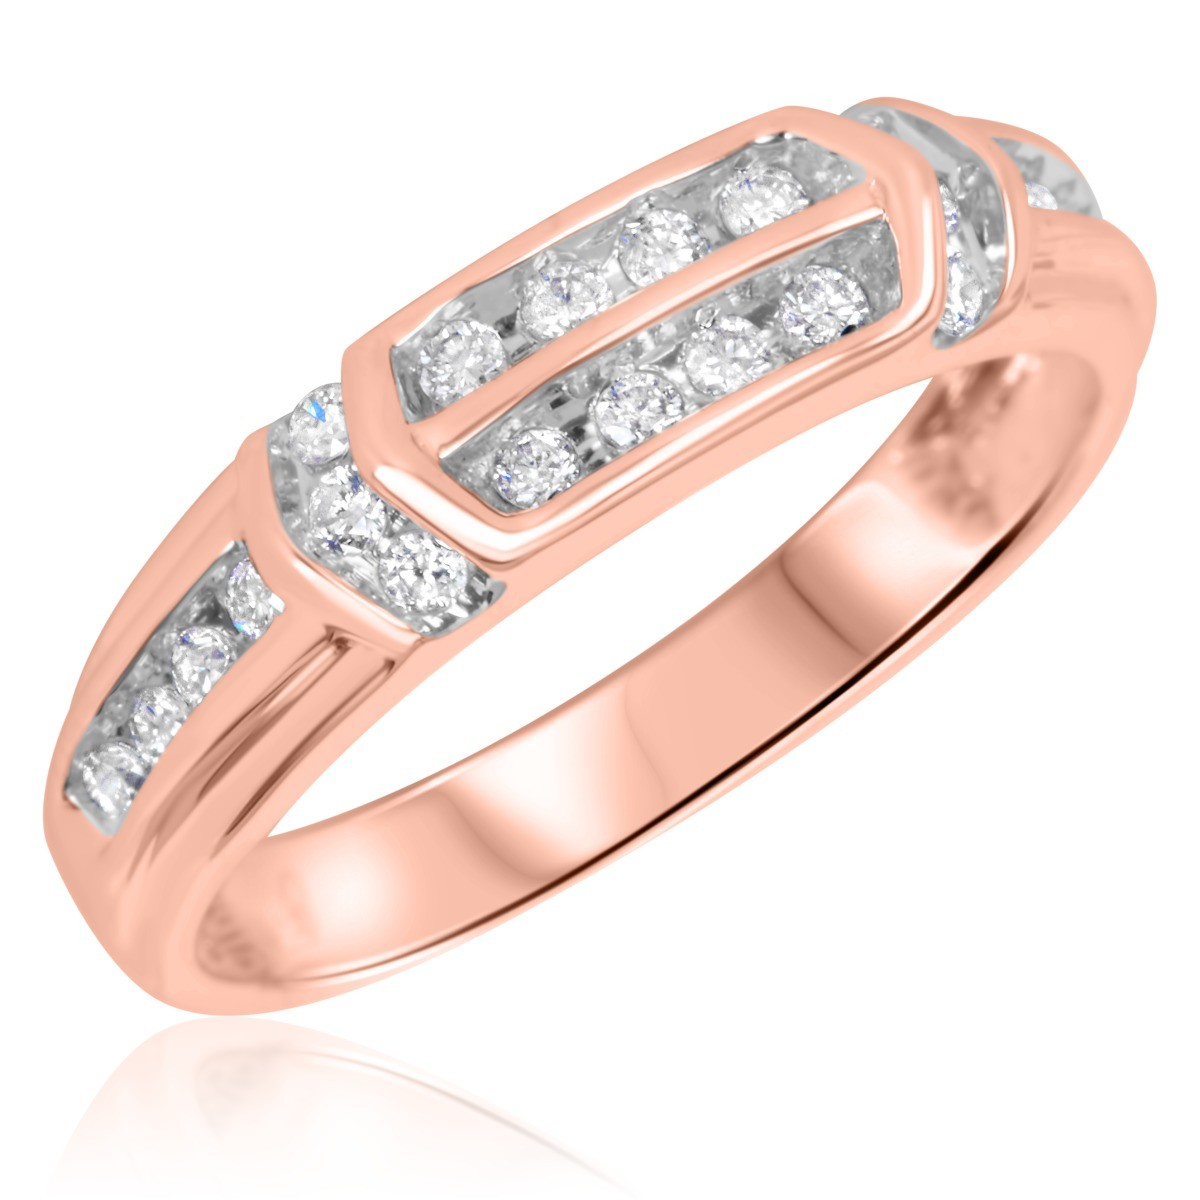 1/4 CT. T.W. Diamond Ladies' Wedding Ring 10K Rose Gold